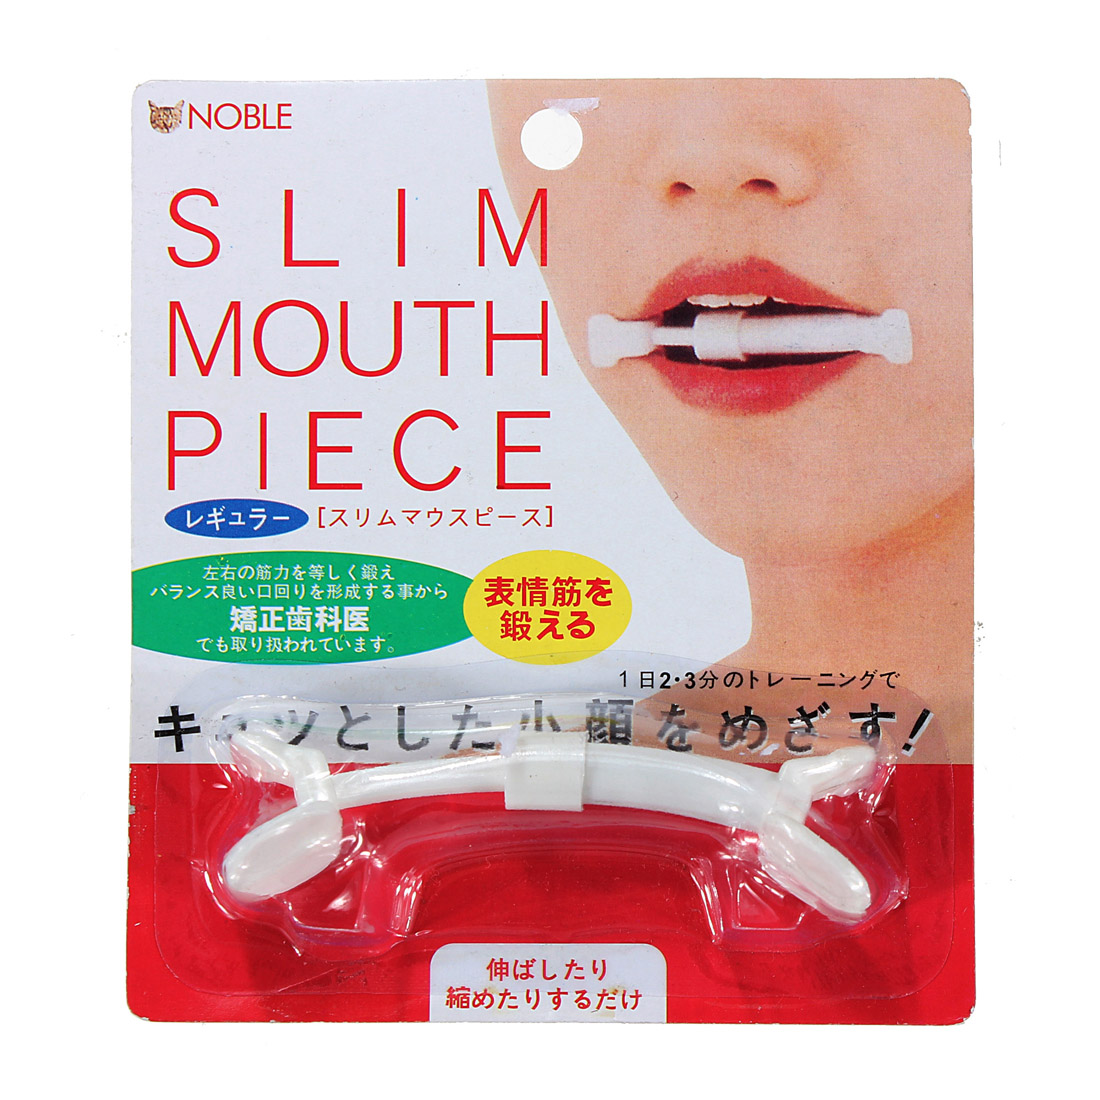 Acial Muscle Exercise Mouth Toning Slim Toner Flex Face Smile Cheek